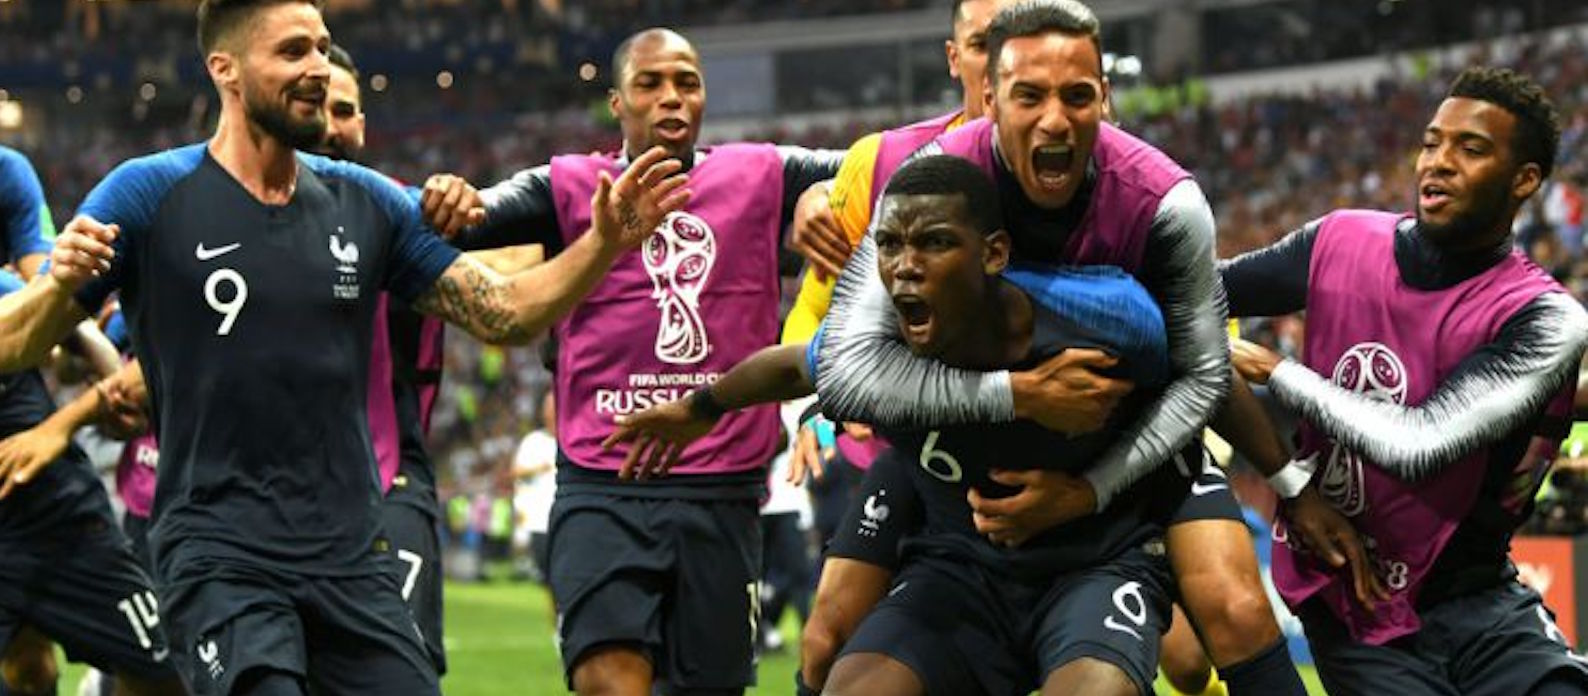 Hugo Lloris defends Manchester United midfielder Paul Pogba against 'unfair' criticism